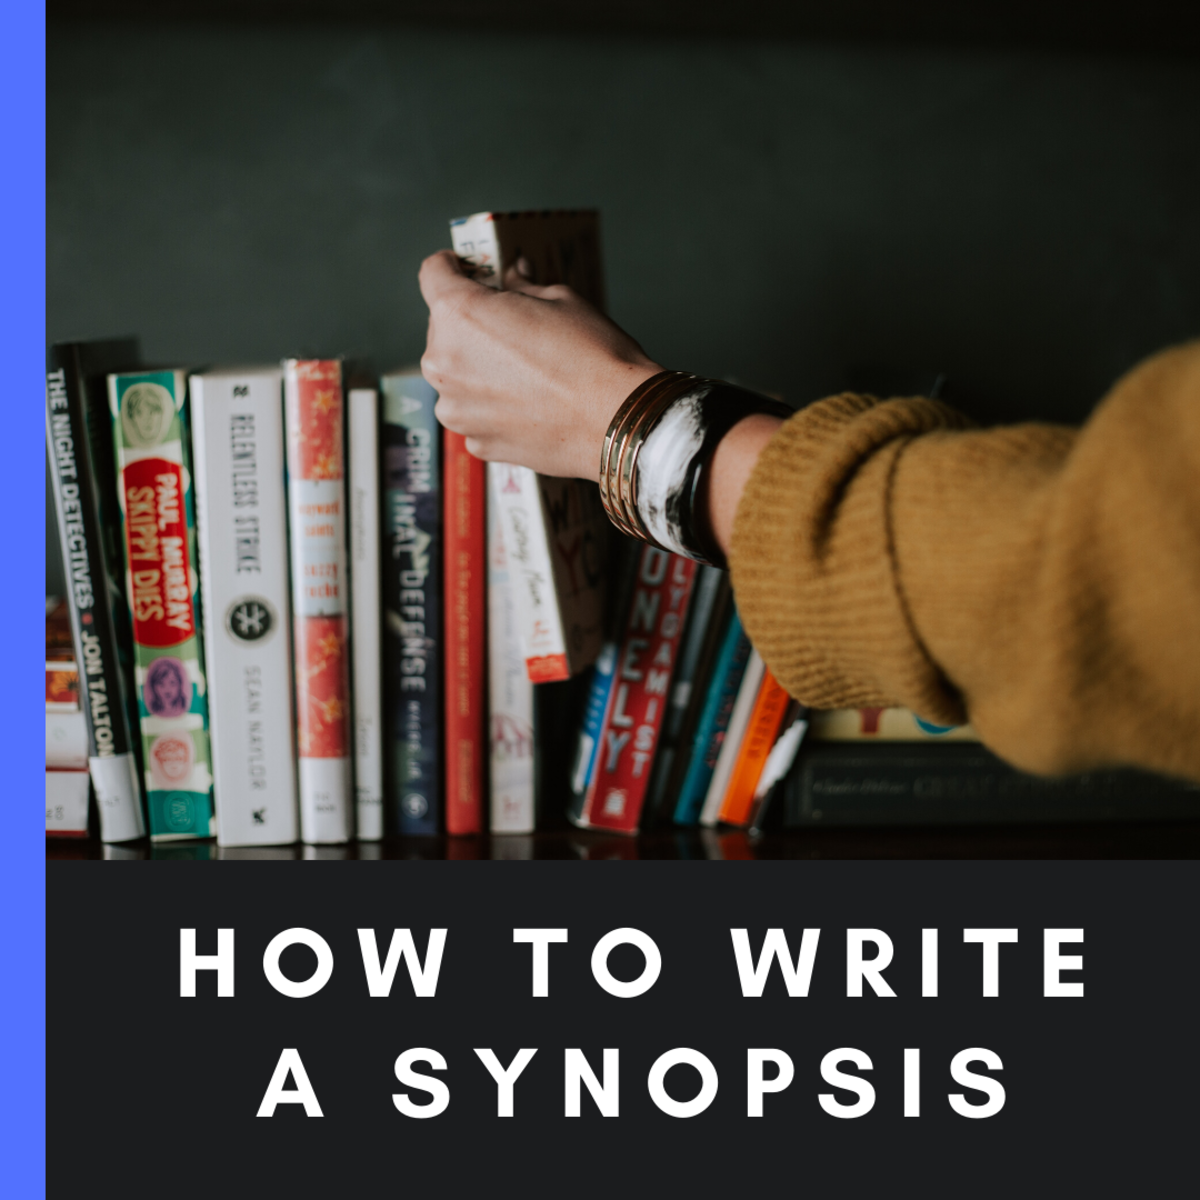 Read on to learn how to write a synopsis successfully.